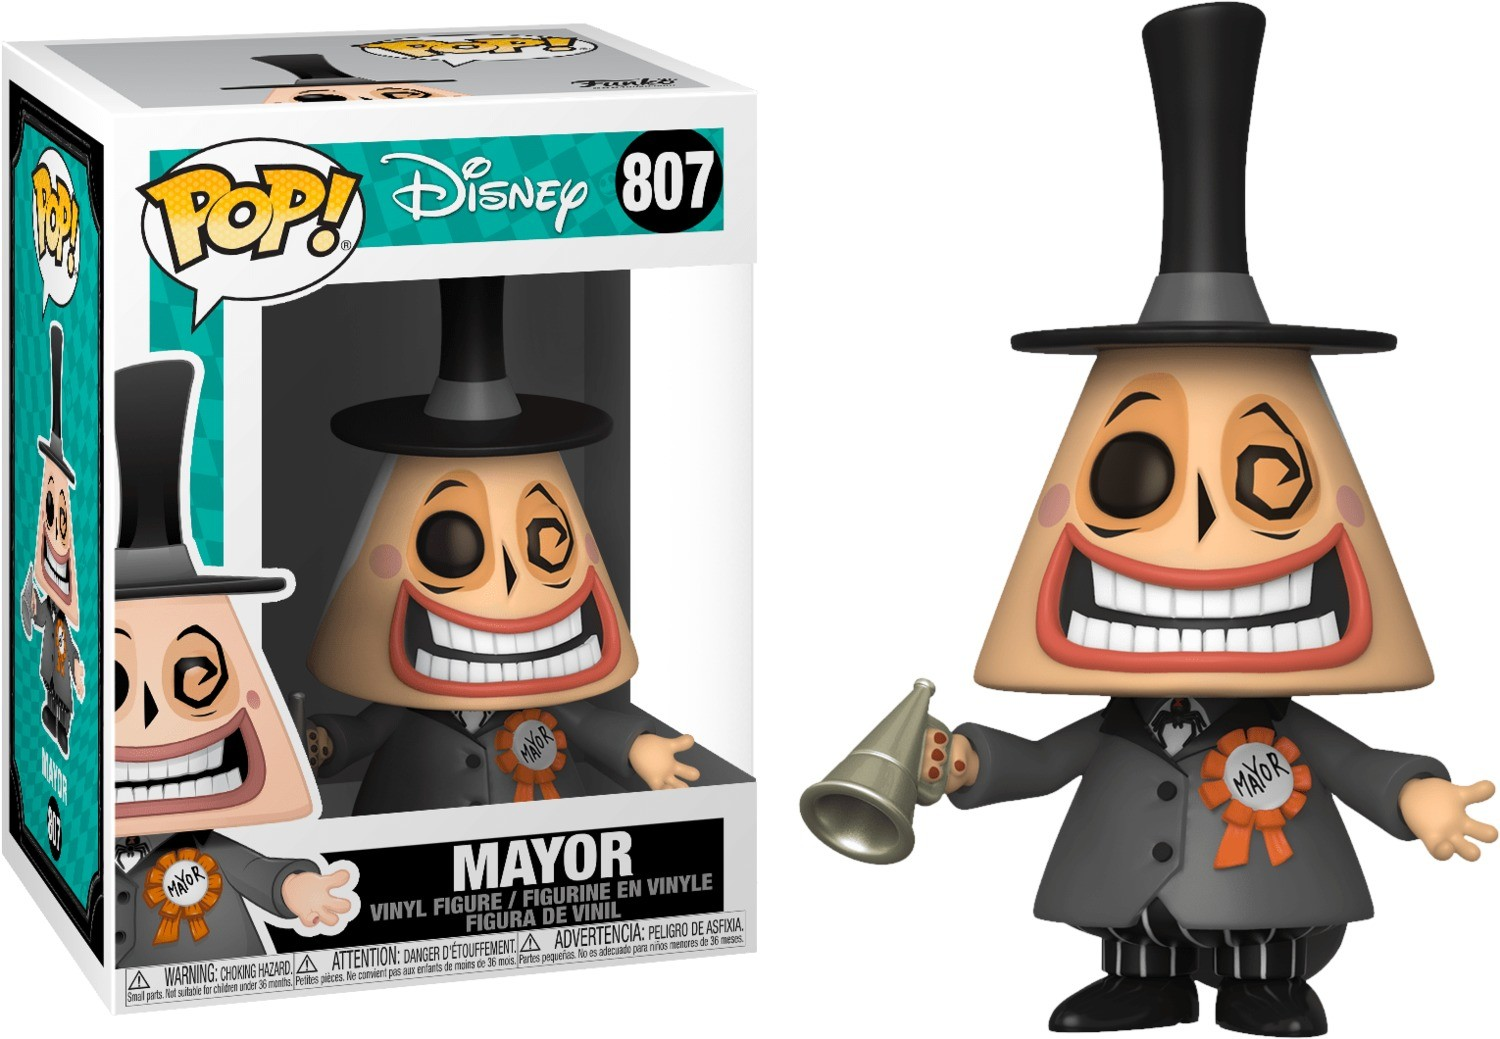 Shock ReAction Figure The Nightmare Before Christmas FunKo Free Shipping!